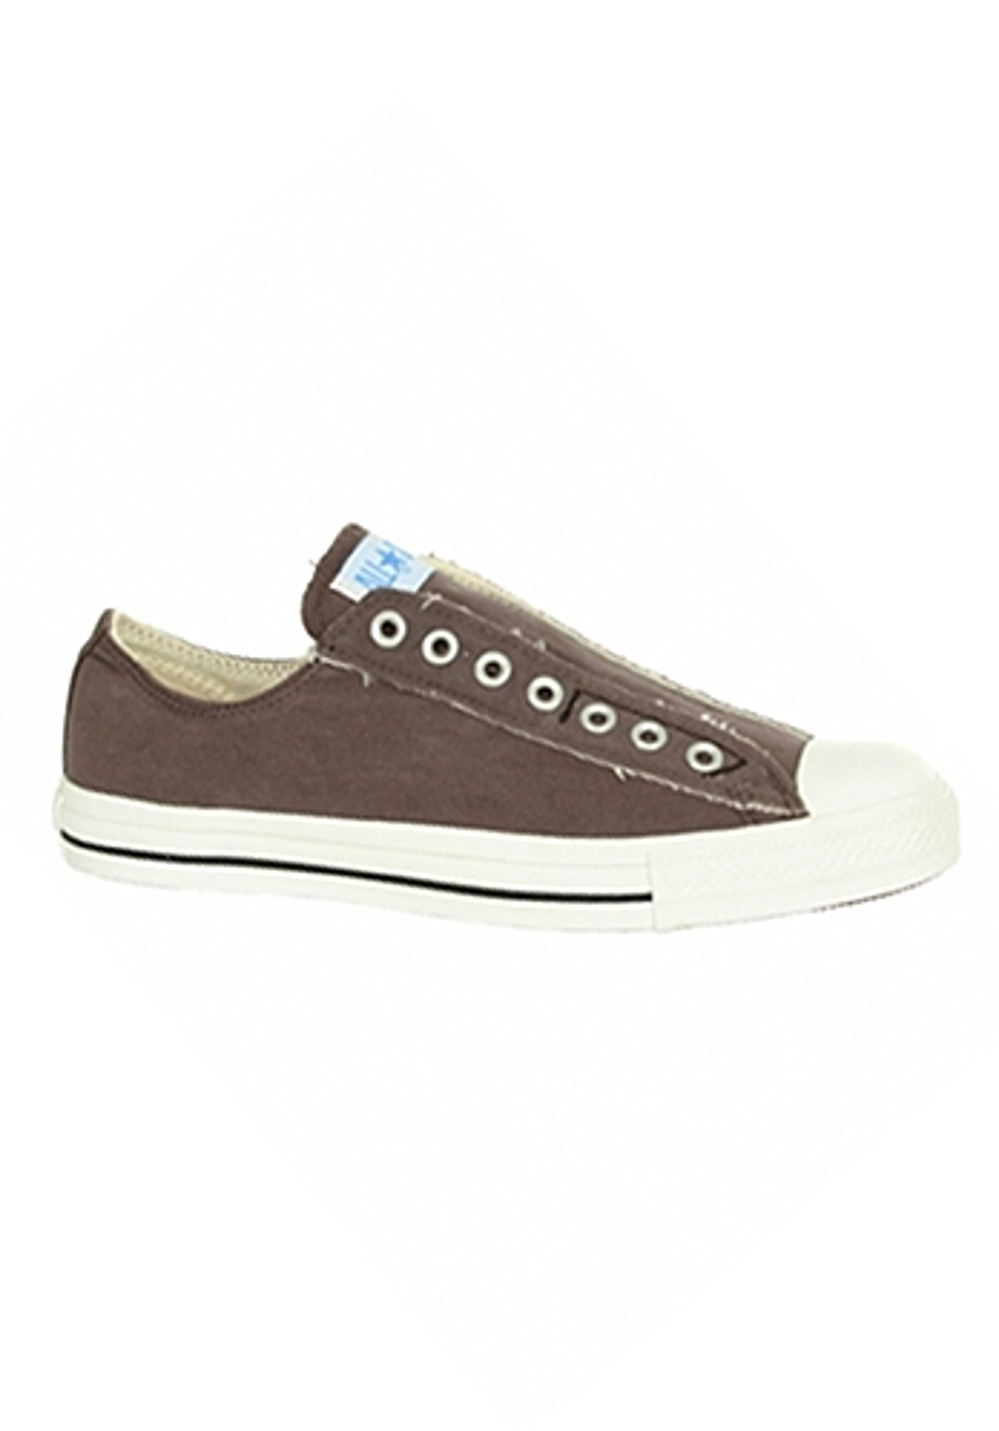 converse chuck taylor all star slip ox sneakers brown. Black Bedroom Furniture Sets. Home Design Ideas